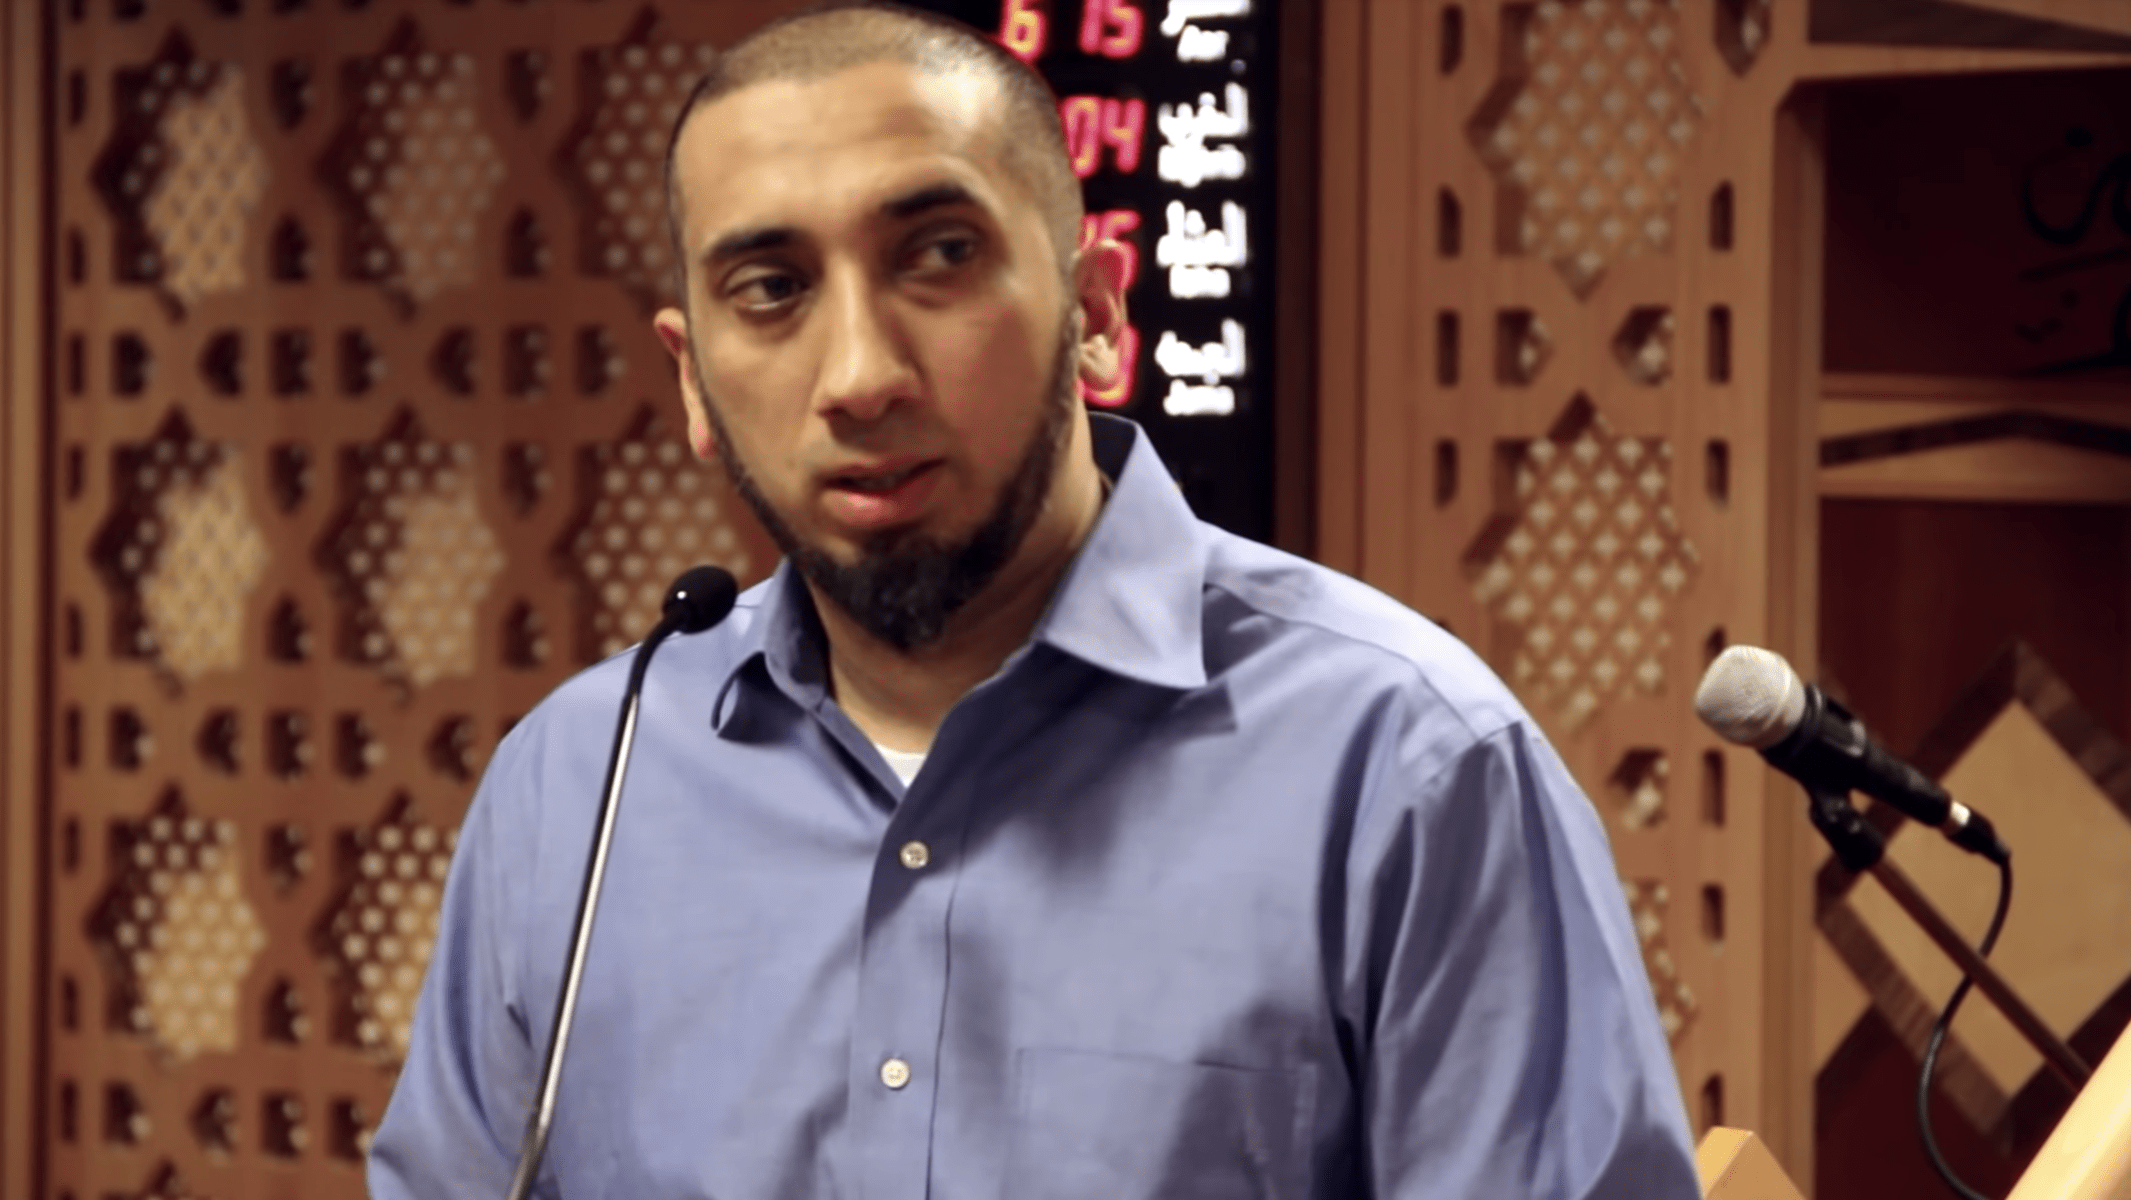 Nouman Ali Khan – Don't Underestimate Any Good Deed: The Quran's Approach on Dealing With Attacks on Islam